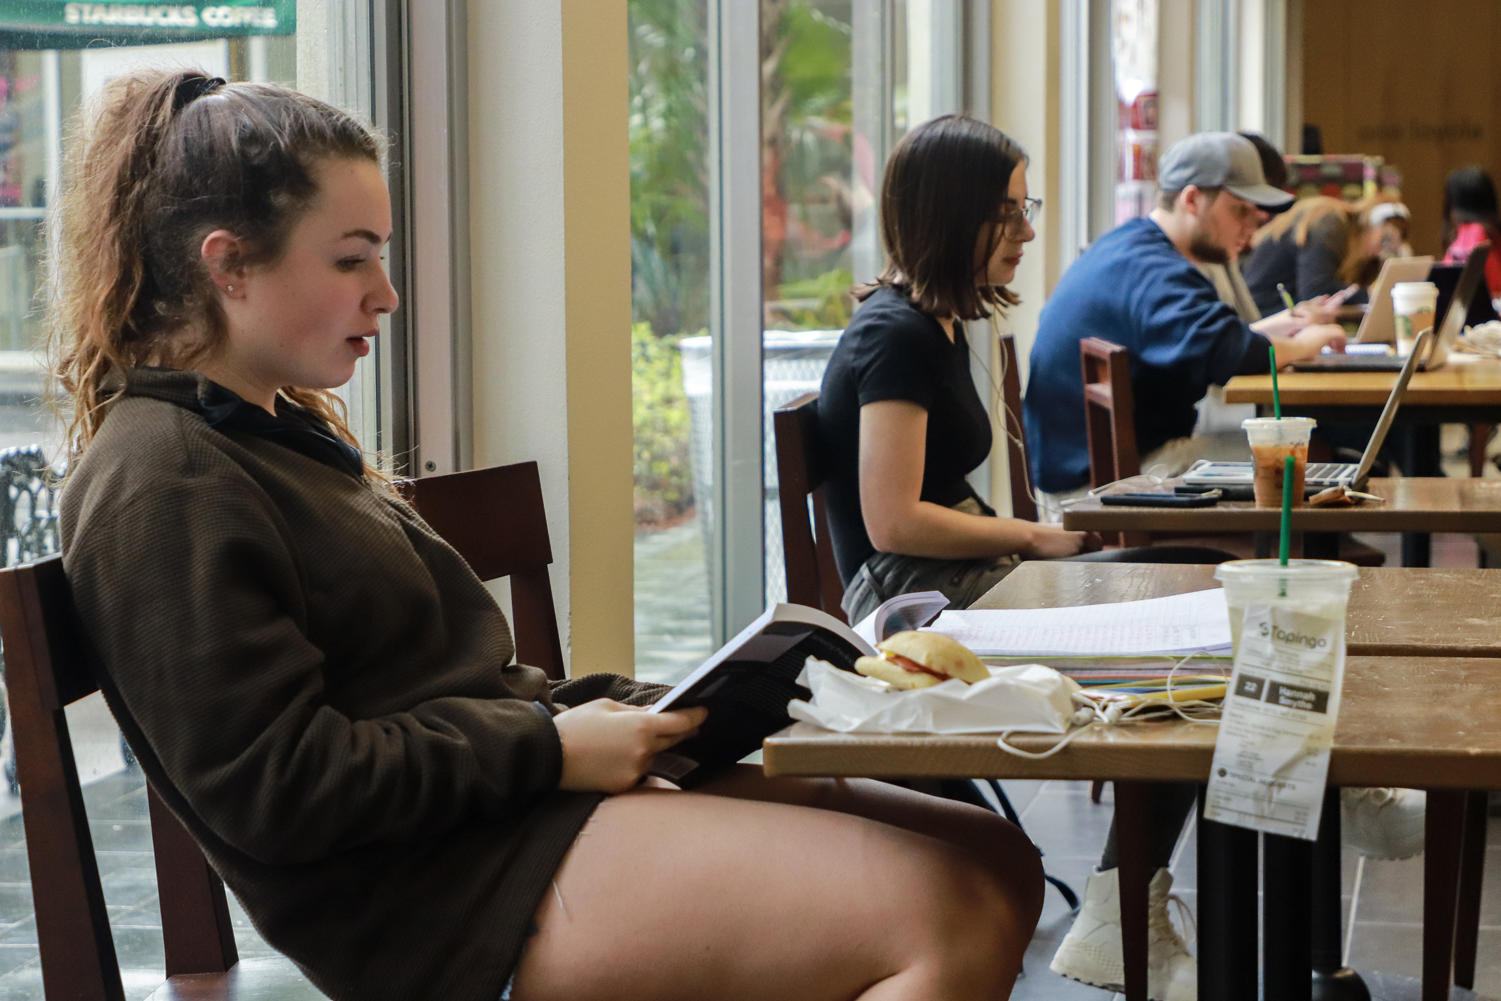 A Loyola student studies at Starbucks in the Danna Center with her coffee that she ordered using Tapingo. The express service allows students to order food and beverages ahead of time and pick them up at their convenience. Photo credit: Rob Noelke